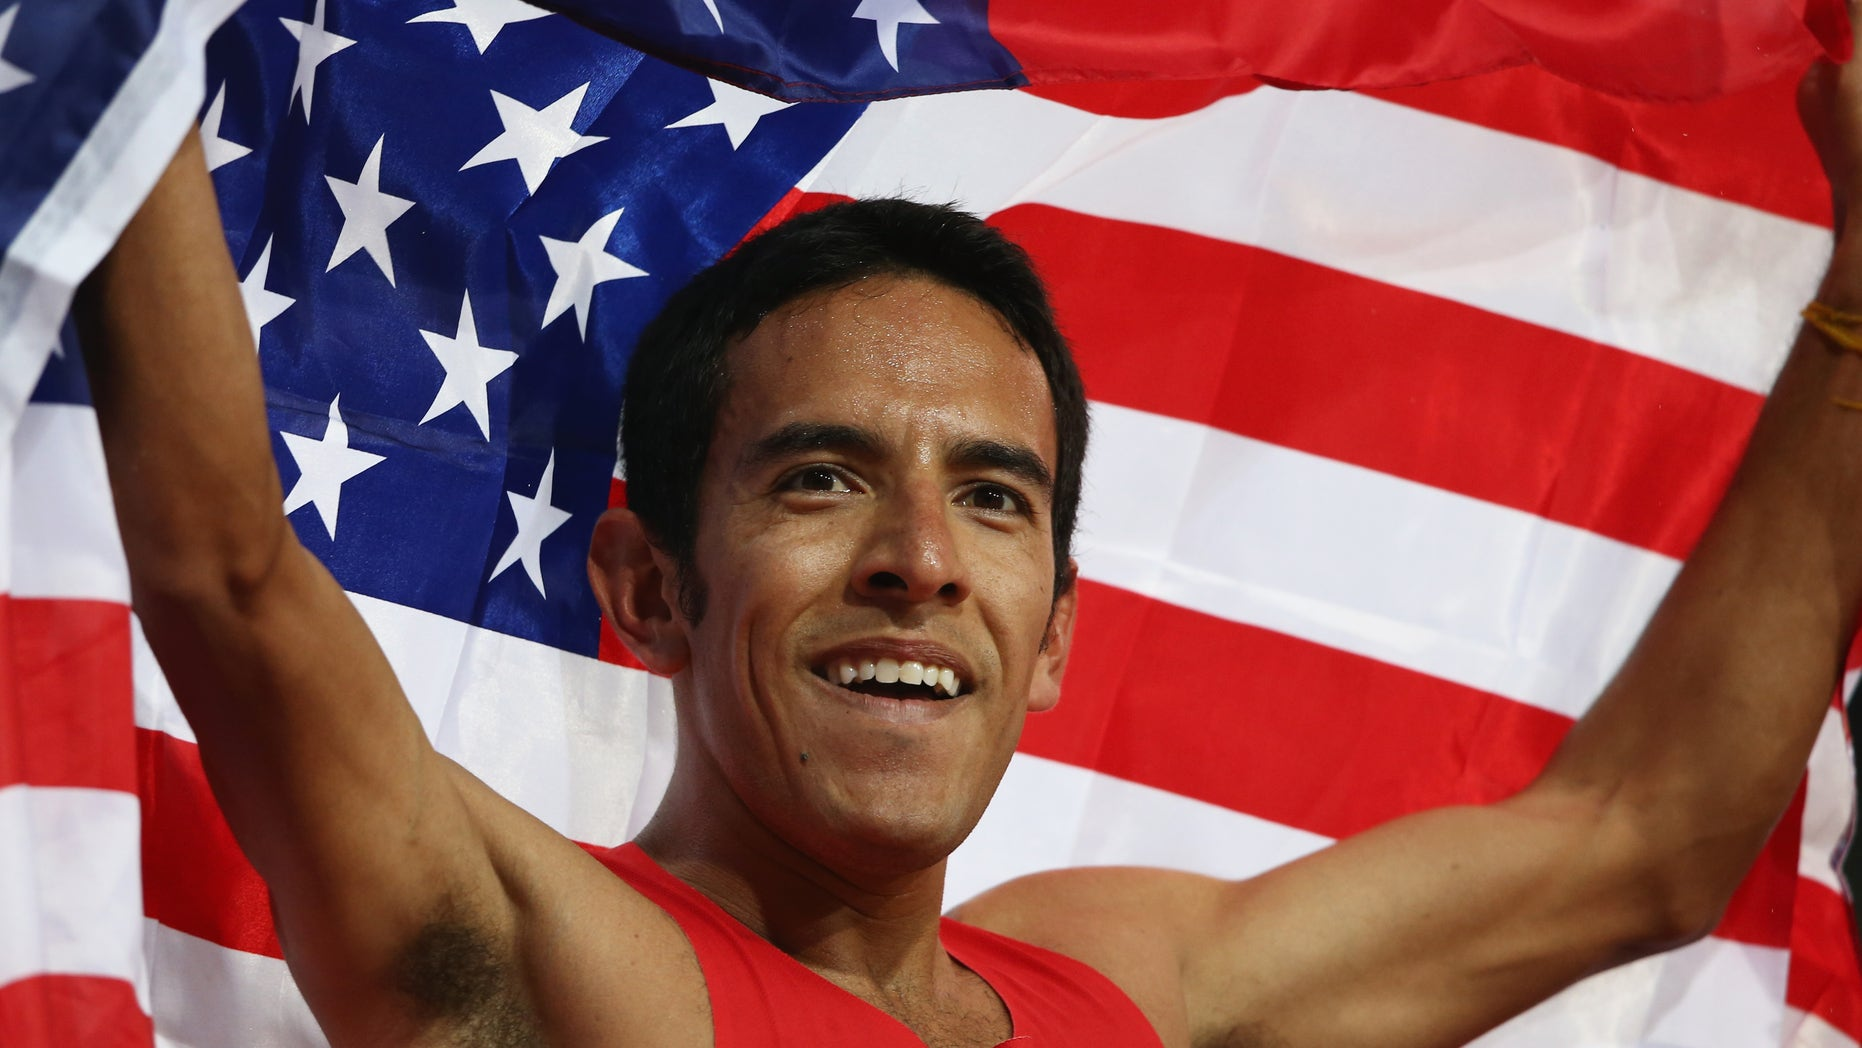 Leonel Manzano celebrates after winning silver in the Men's 1500m Final on Day 11 of the London 2012 Olympic Games at Olympic Stadium.